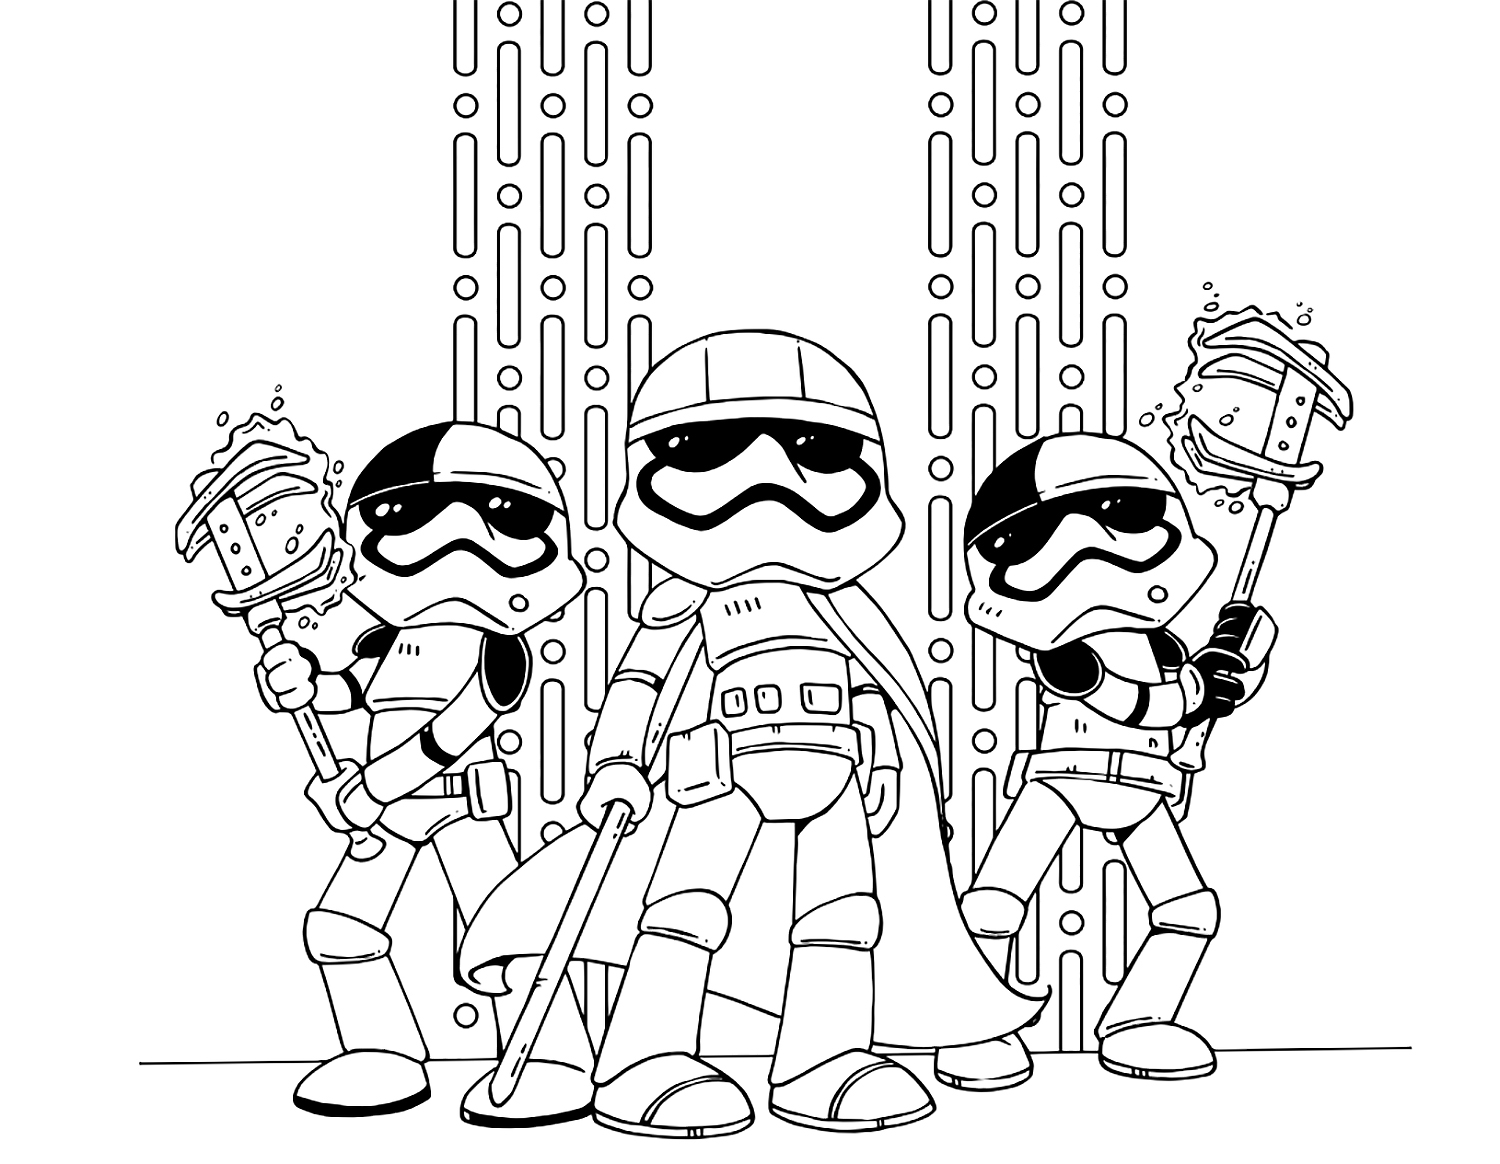 Star Wars: The Last Jedi cute coloring pages - YouLoveIt.com